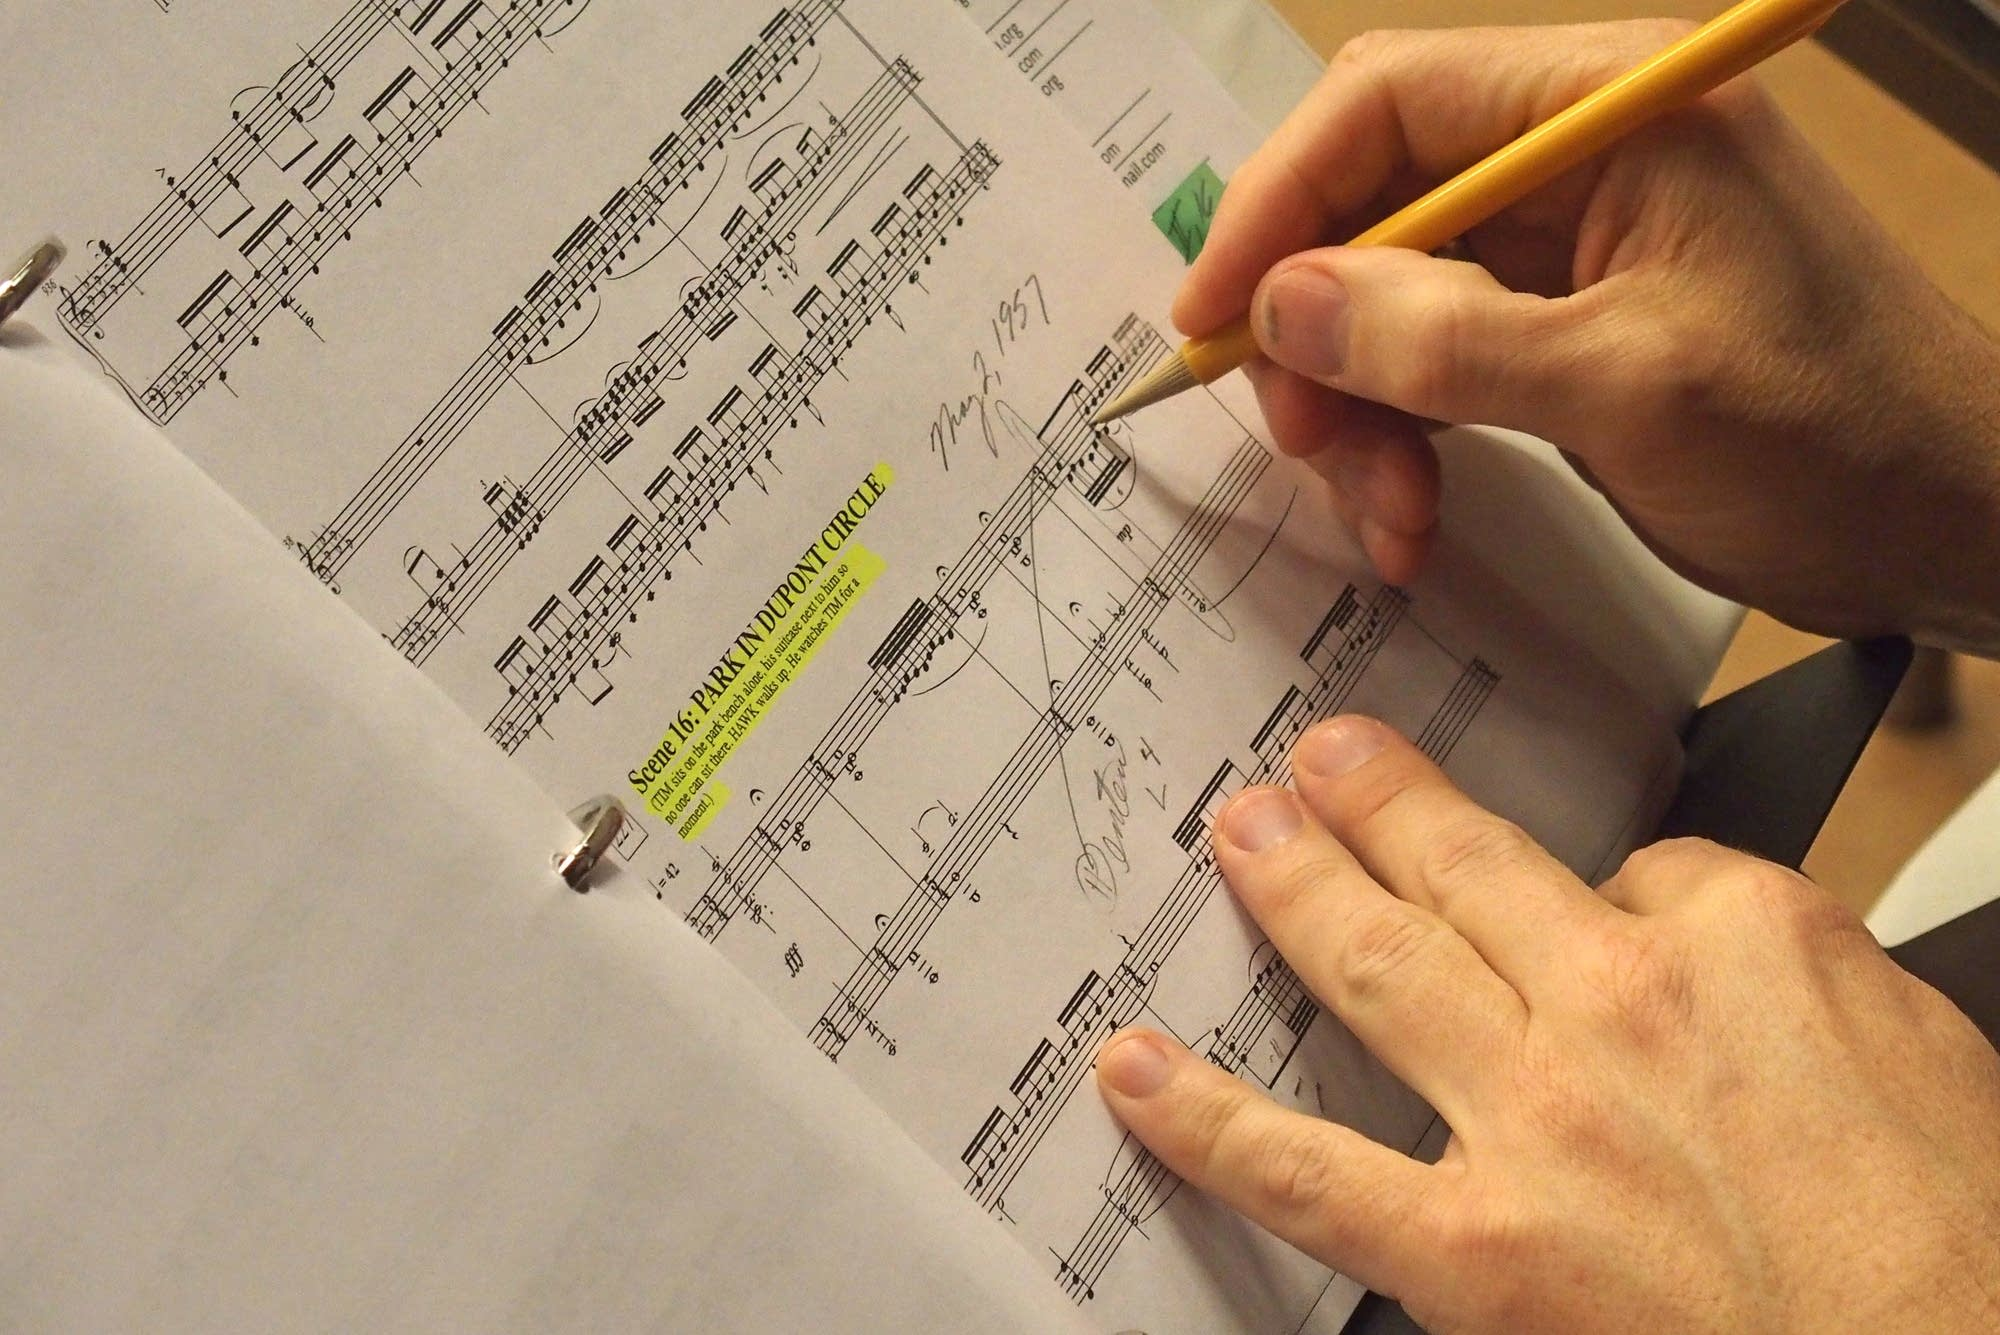 Peter Rothstein makes notes on his rehearsal score.